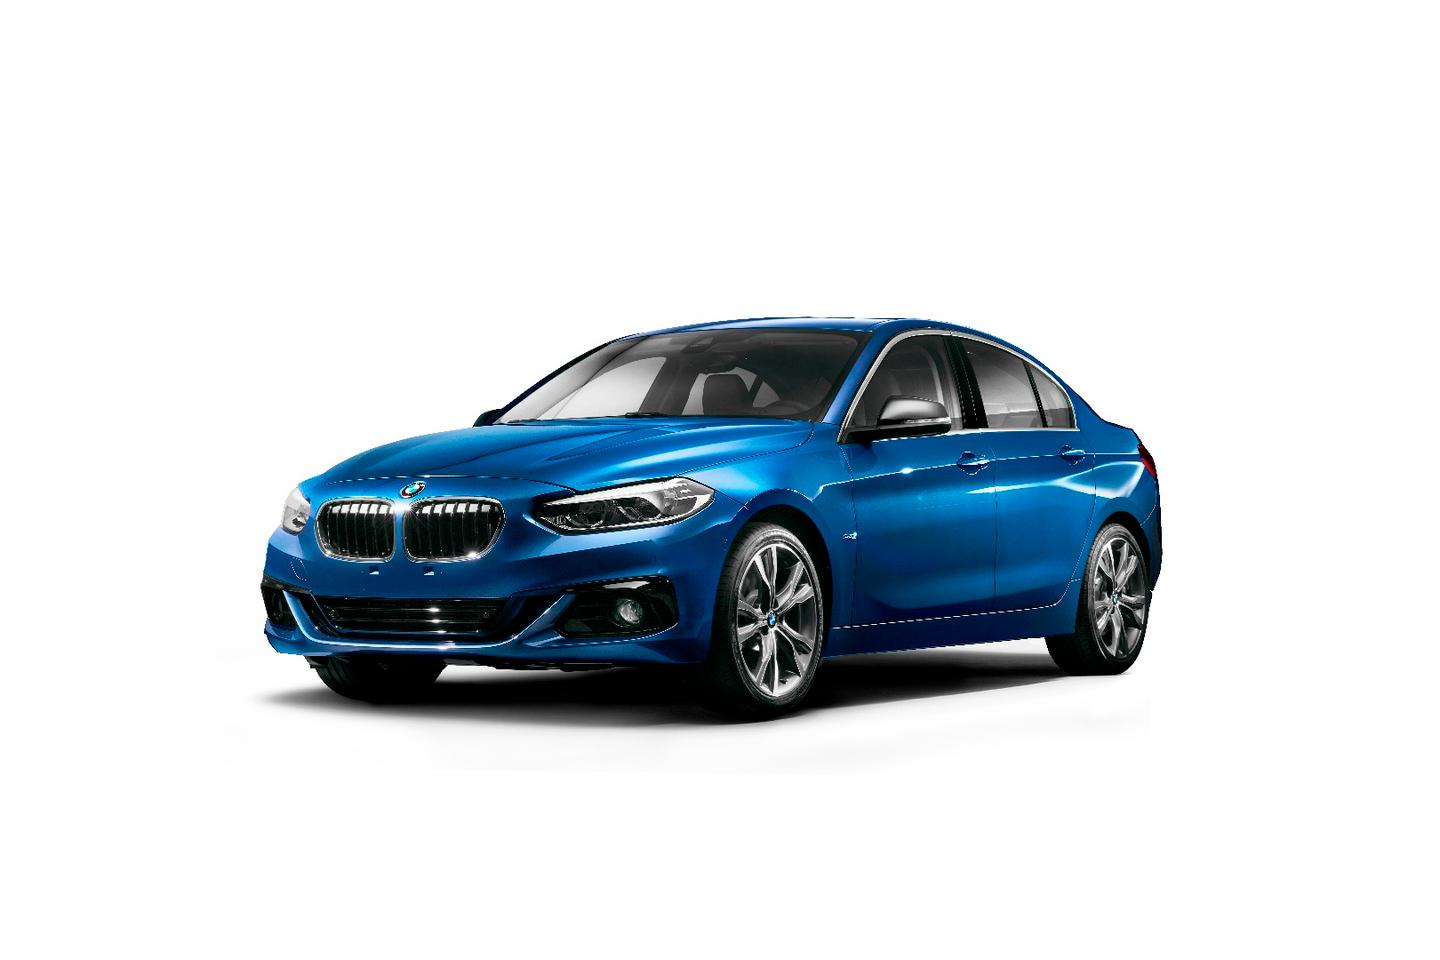 The 1 Series Sedan is China-only